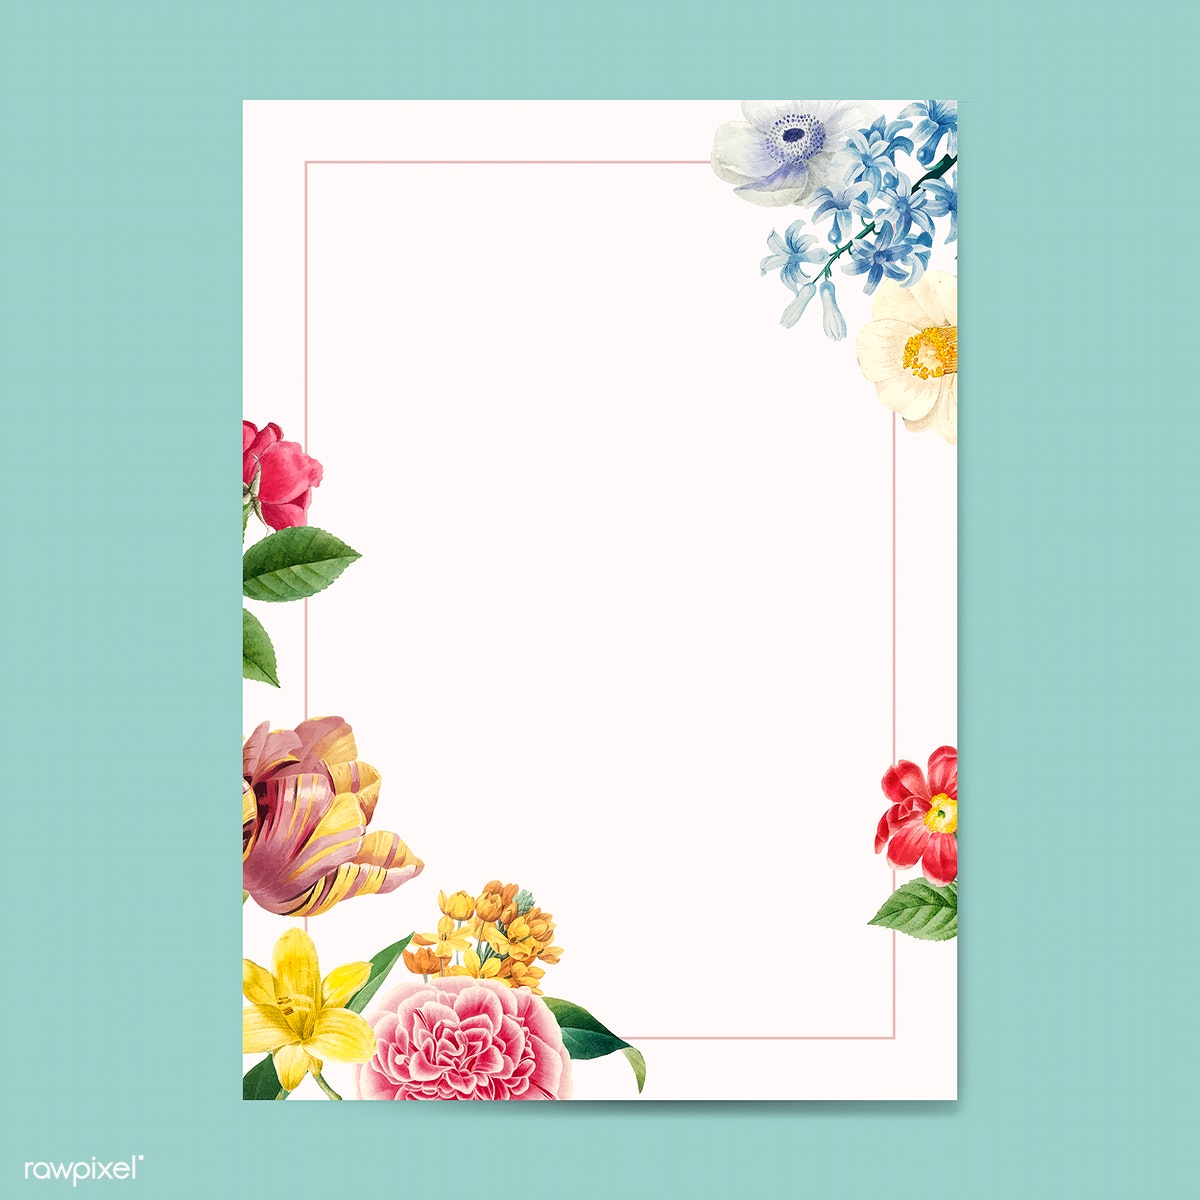 Blank Floral Invitation Copy Space Free Stock Illustration